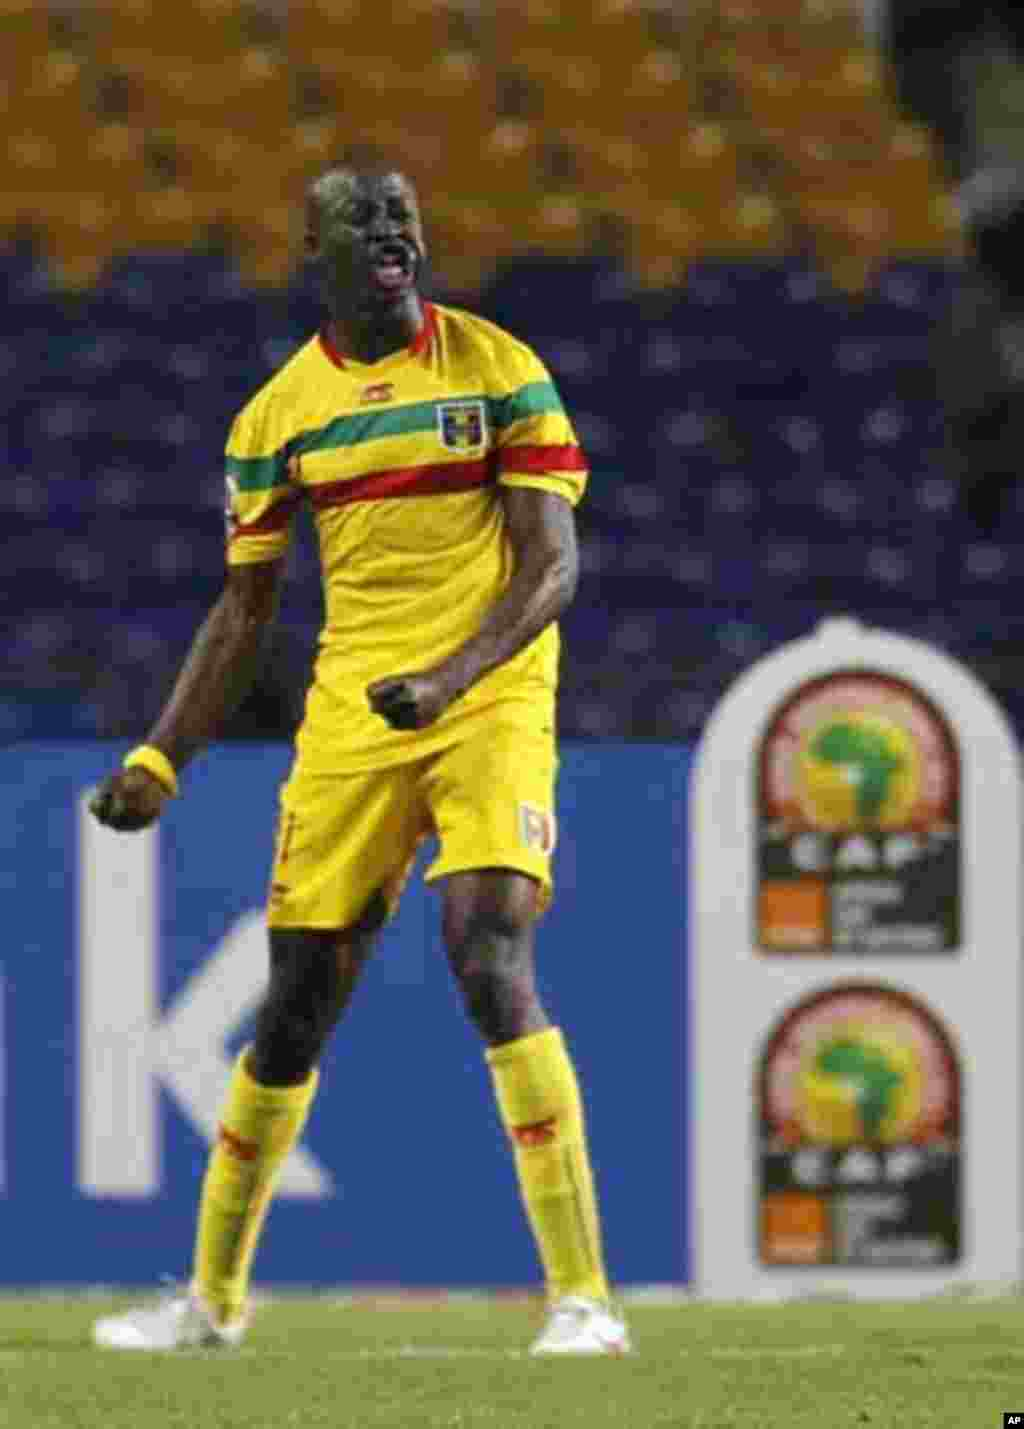 Mali's Garra Dembele celebrates his goal against Botswana during their final African Cup of Nations Group D soccer match at the Stade De L'Amitie Stadium in Libreville February 1, 2012.